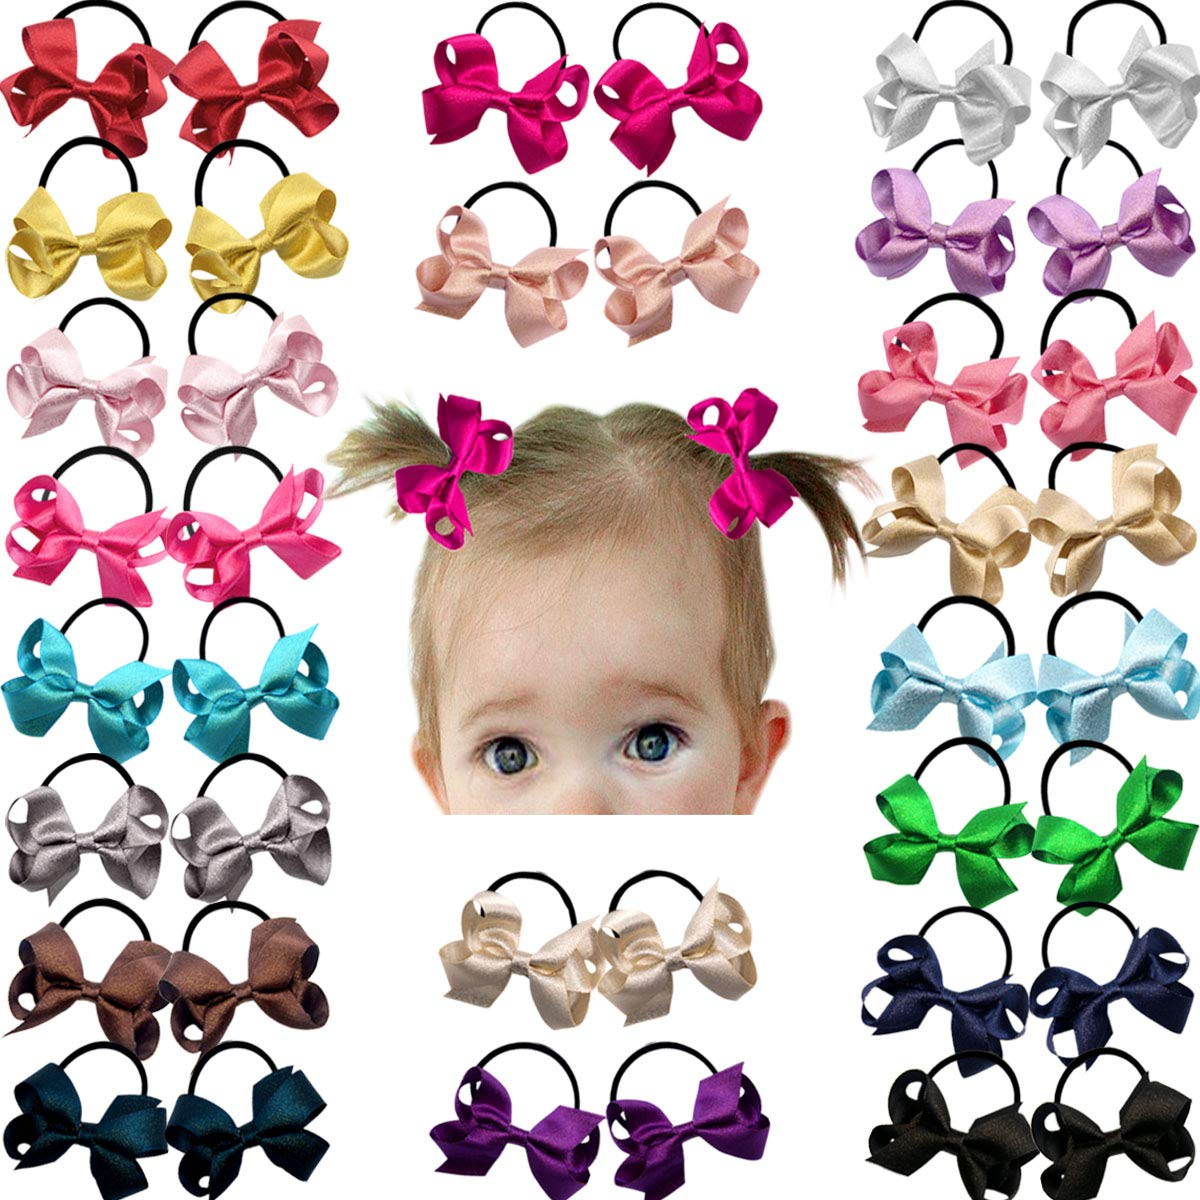 40Pcs Hair Ties Elastic Rope Ponytail Holder Rubber Band for Kids Girls